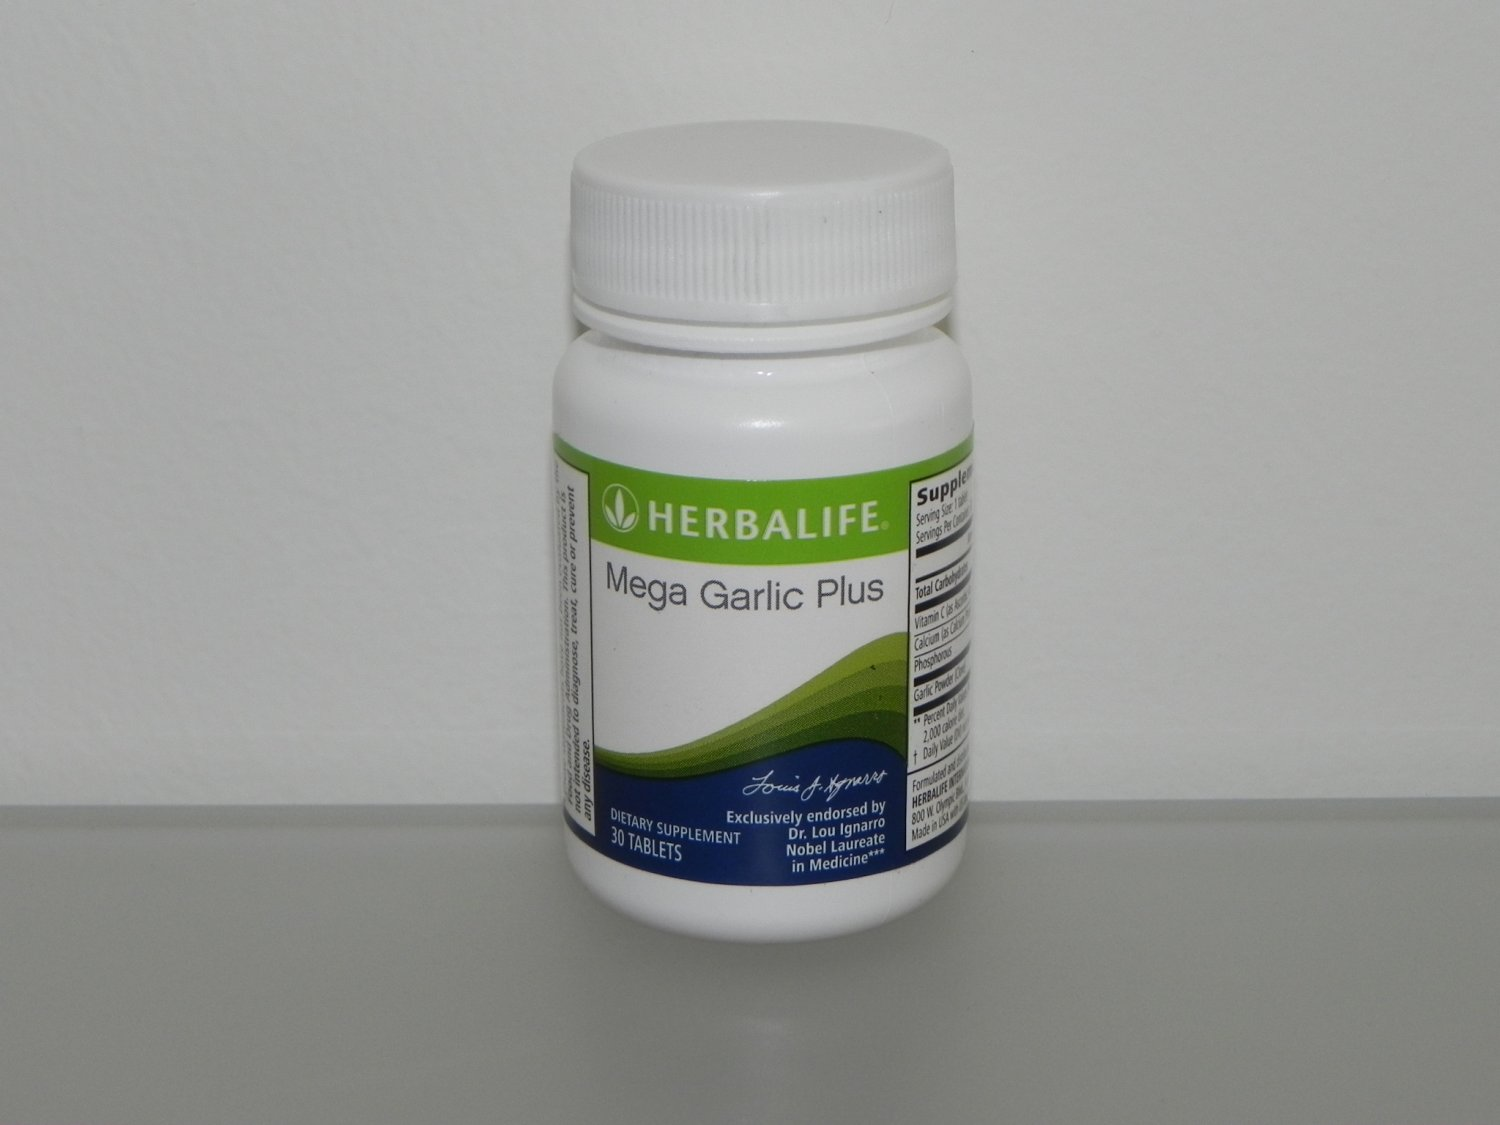 Herbalife Mega Garlic Plus Endorsed by Dr Lou Ignarro Fresh exp 5/16